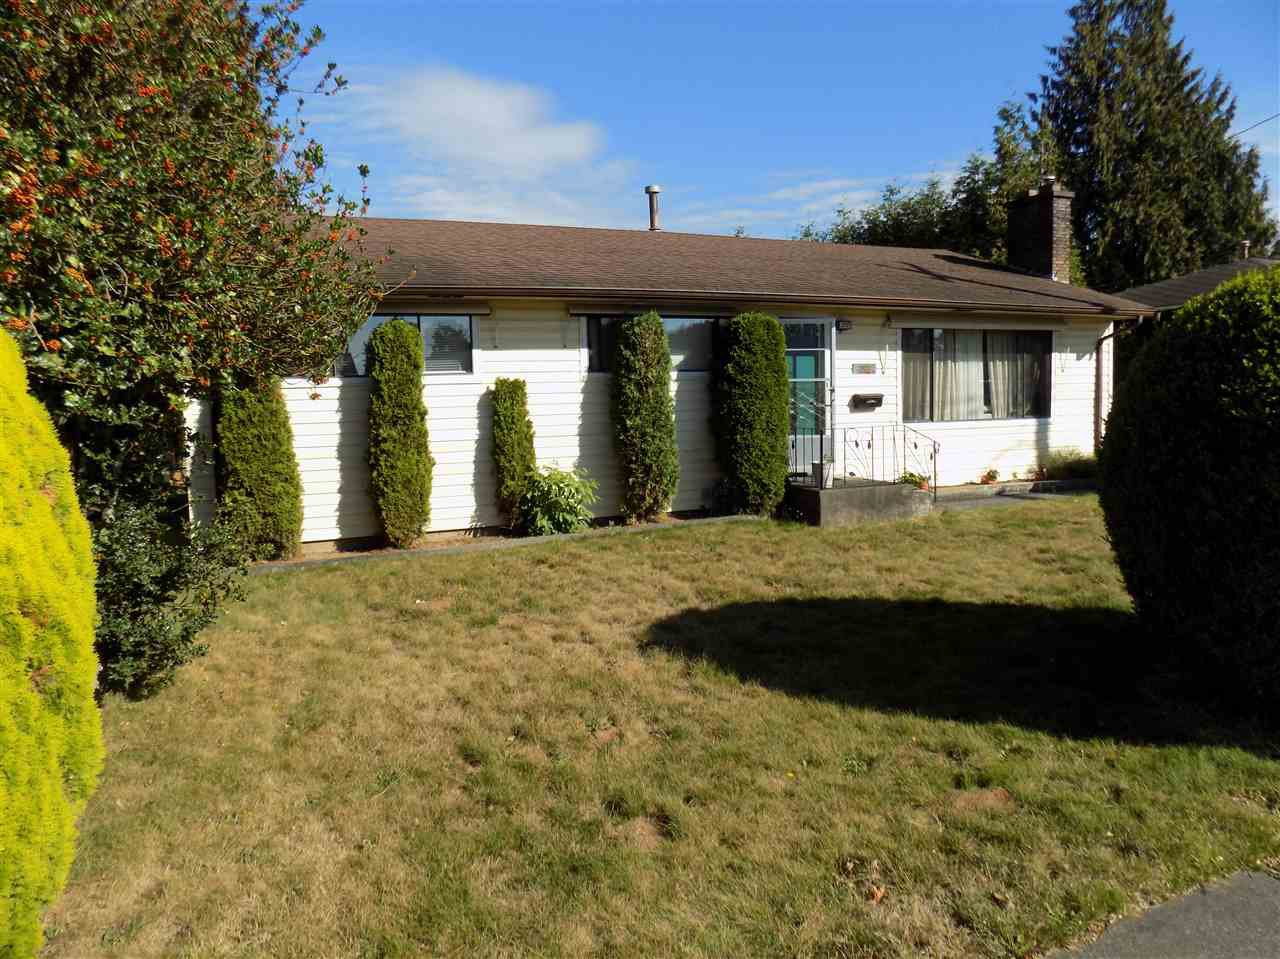 Main Photo: 2096 WARE Street in Abbotsford: Central Abbotsford House for sale : MLS®# R2107238